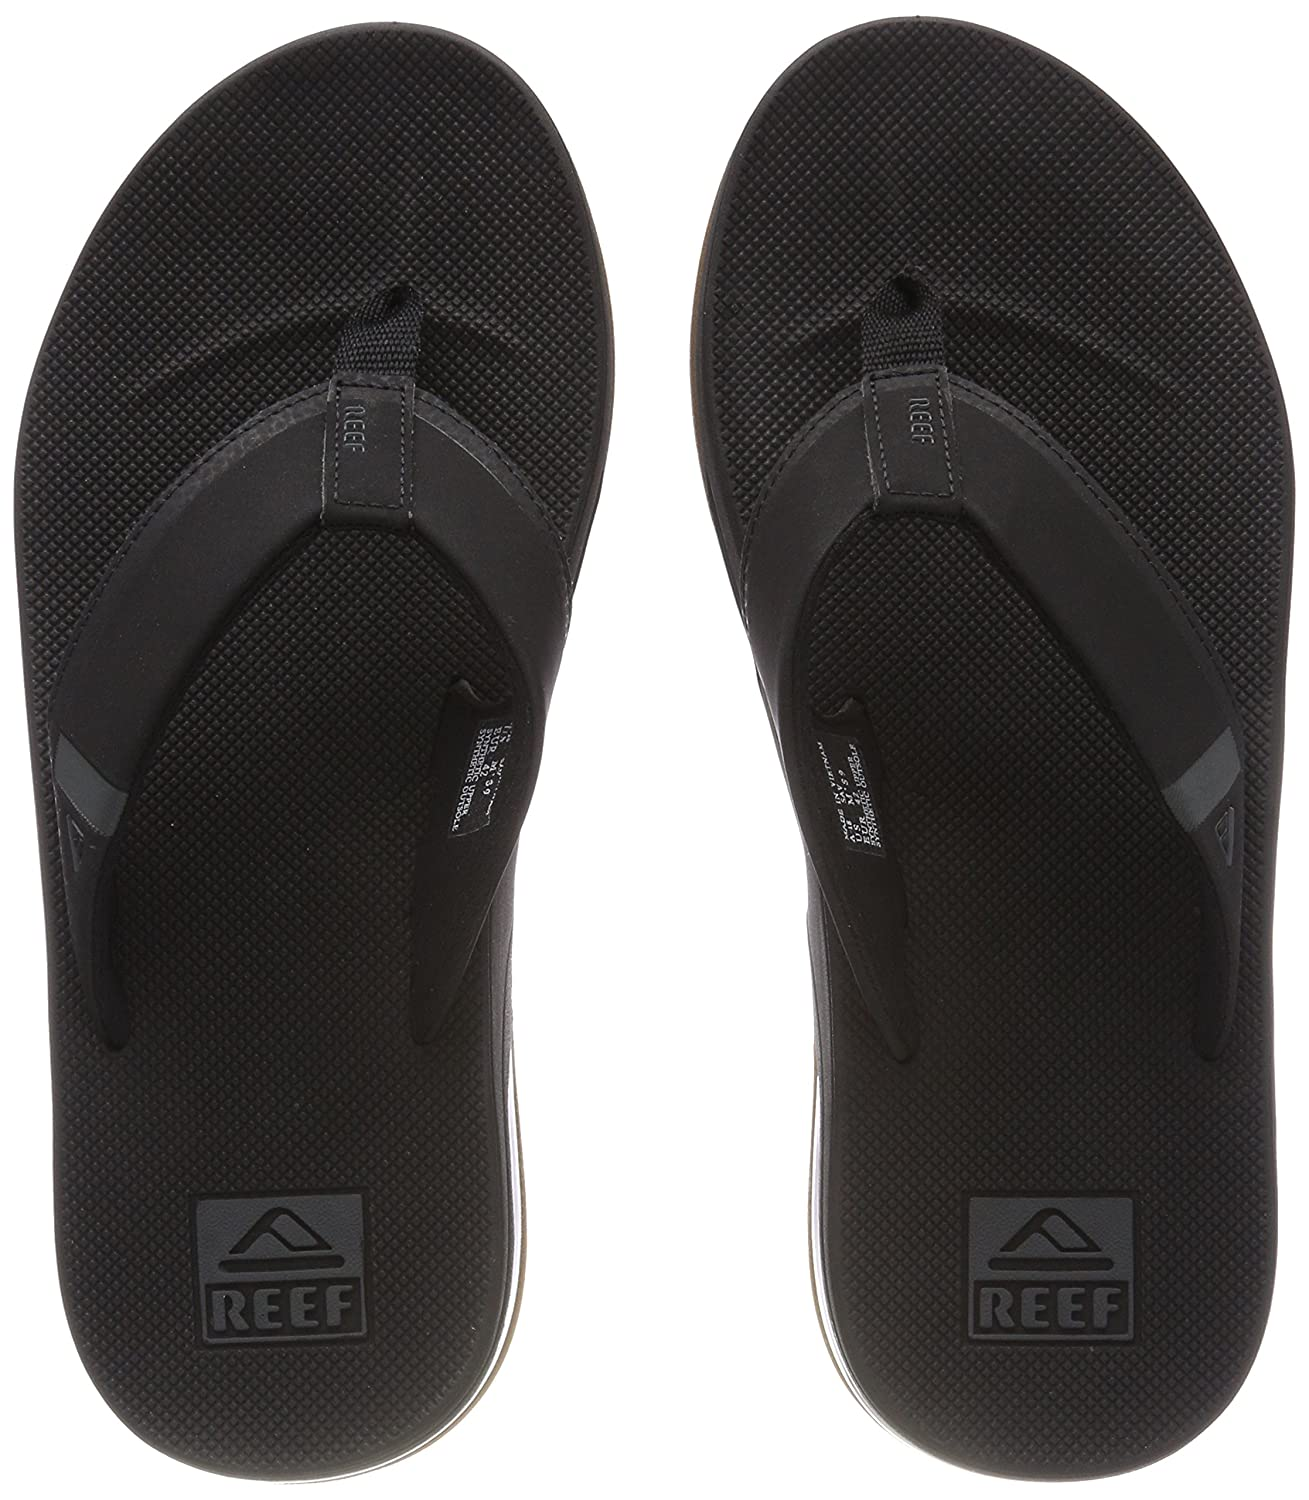 d82bc88ddb4 Amazon.com  Reef Men s Fanning Low Sandal  Shoes